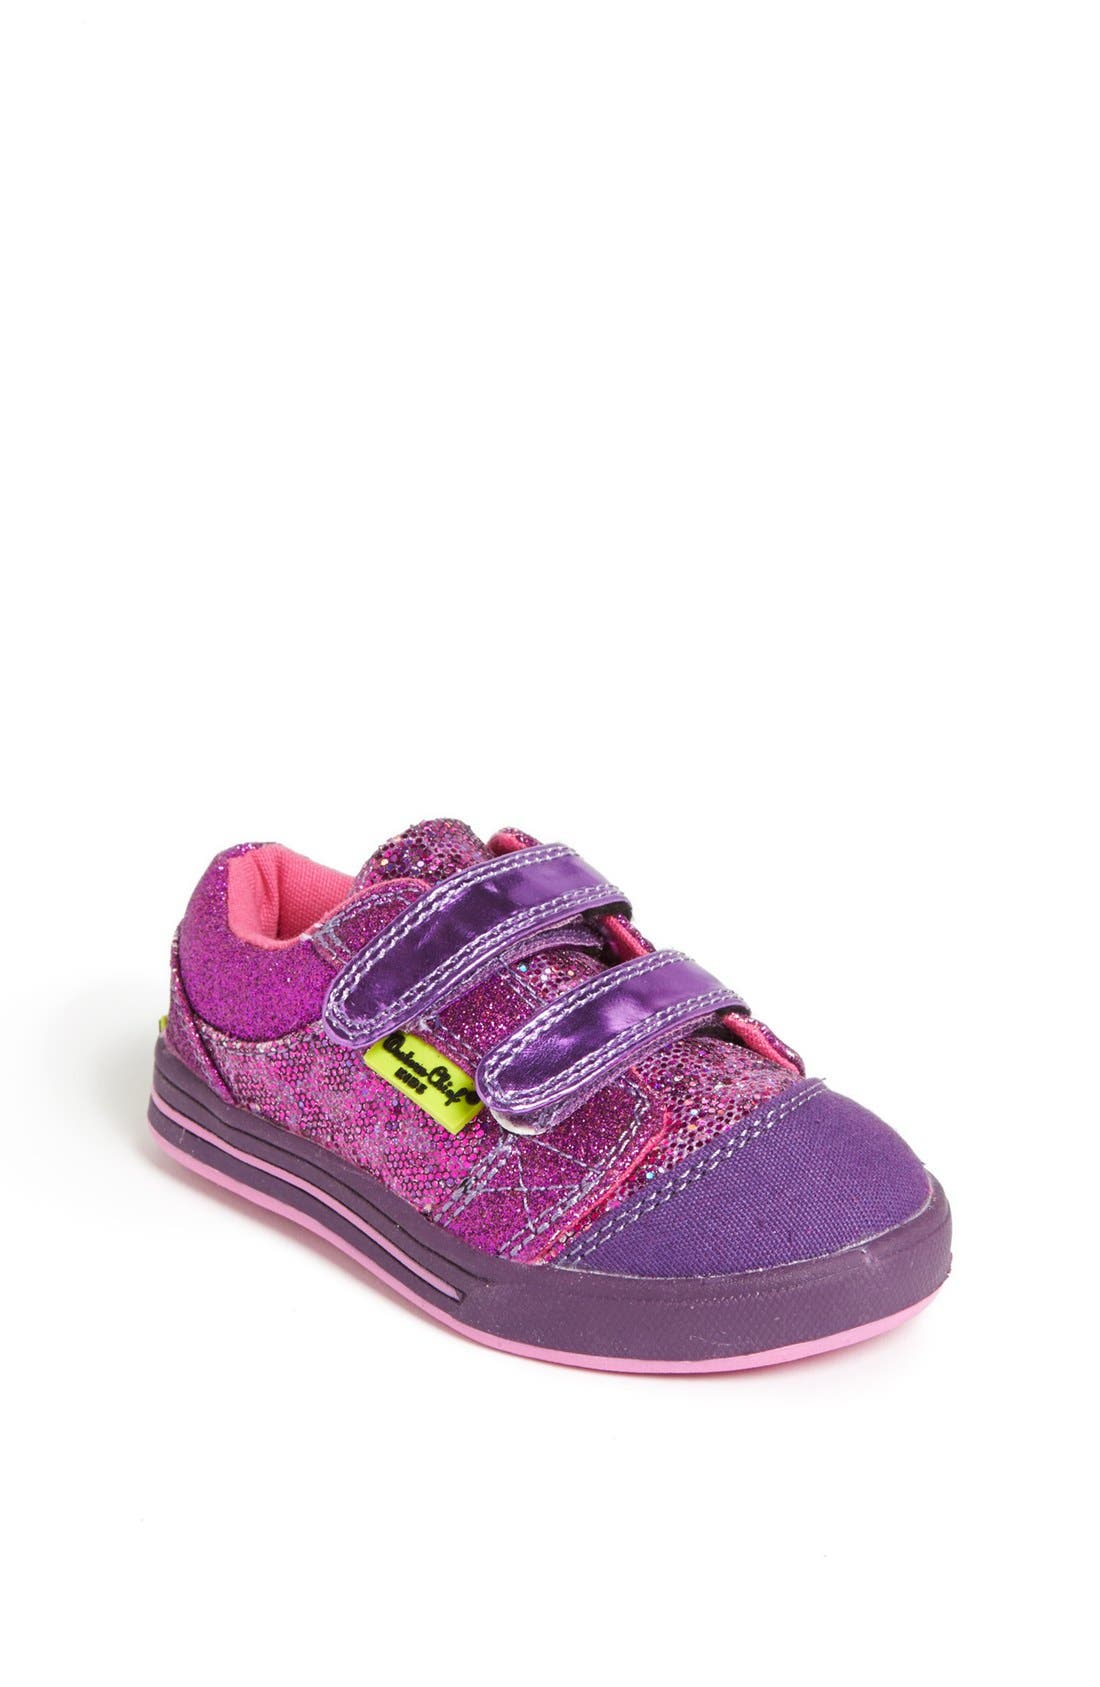 Main Image - Western Chief 'Glam Kitty' Sneaker (Walker & Toddler)